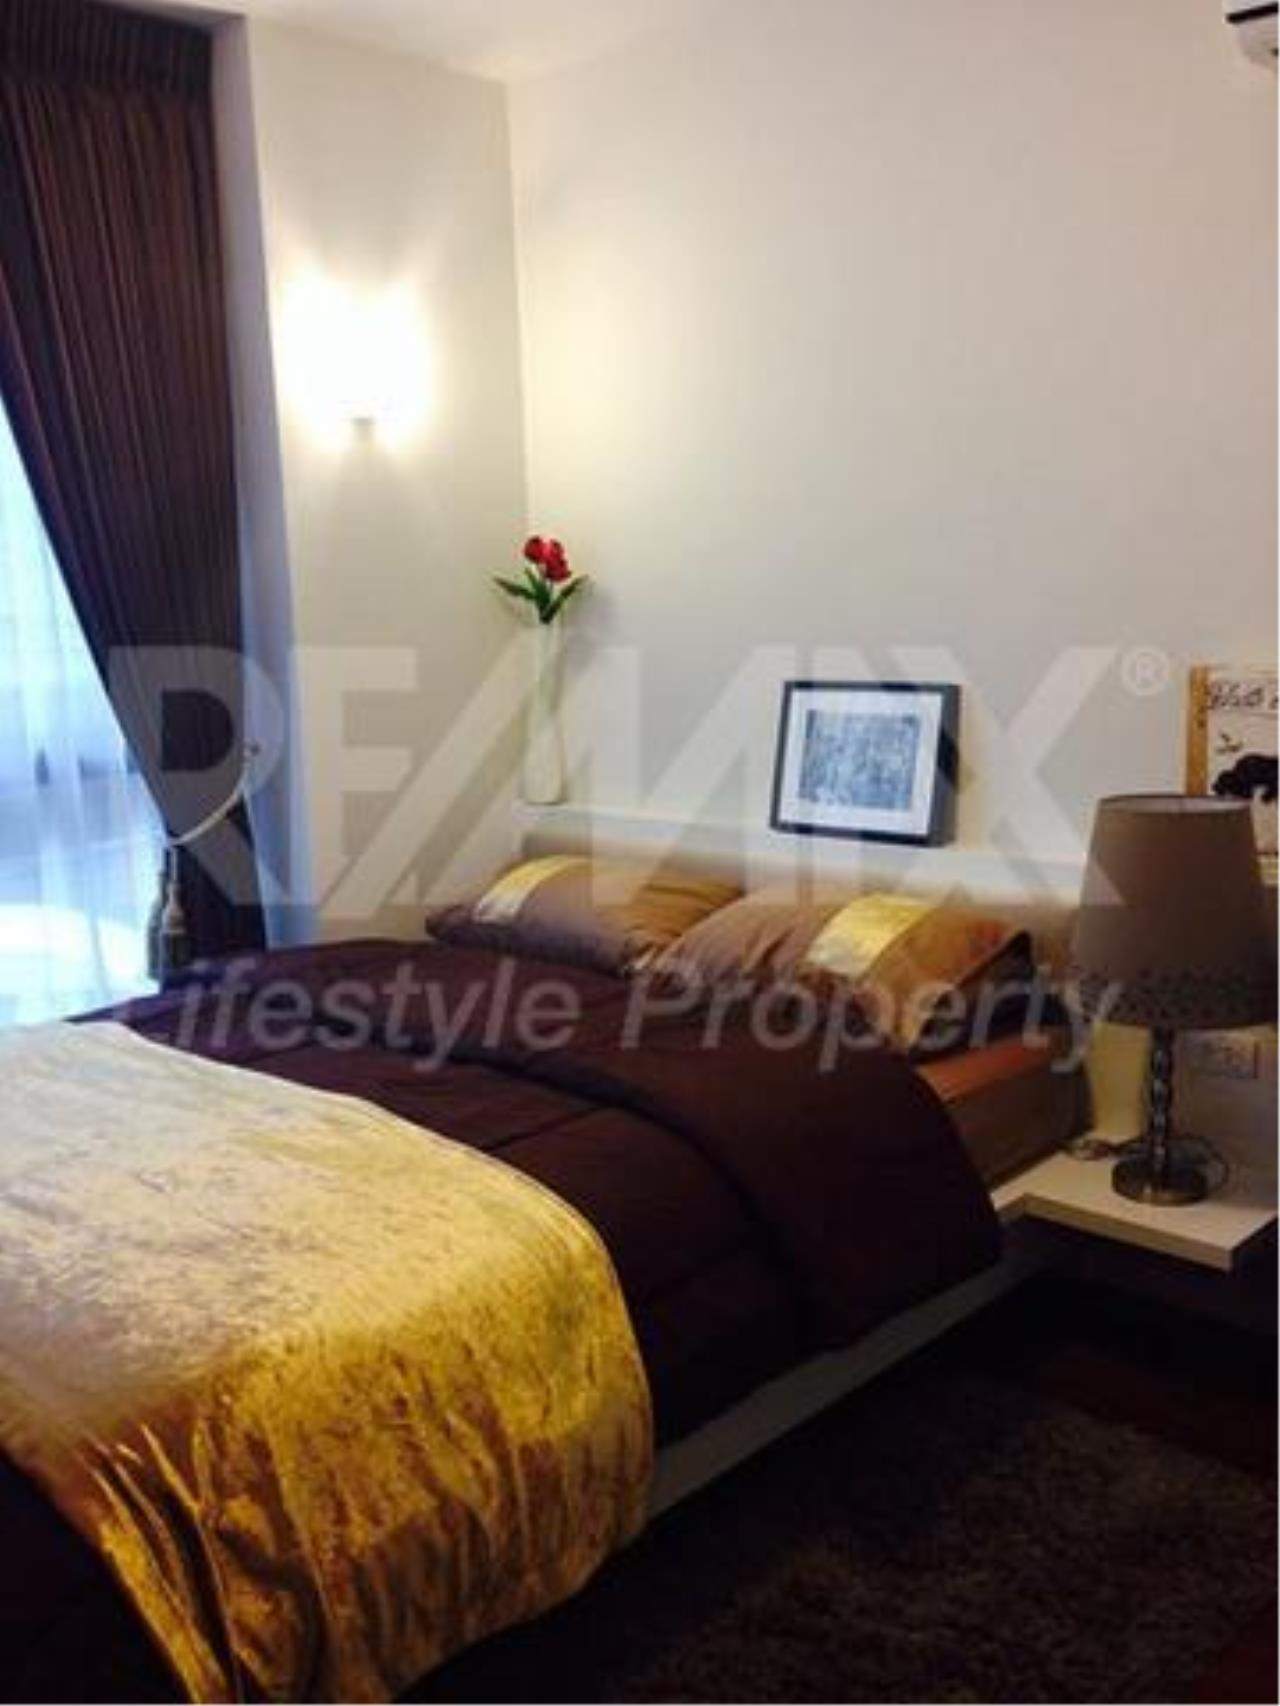 RE/MAX LifeStyle Property Agency's Le Cote Thonglor 8 6